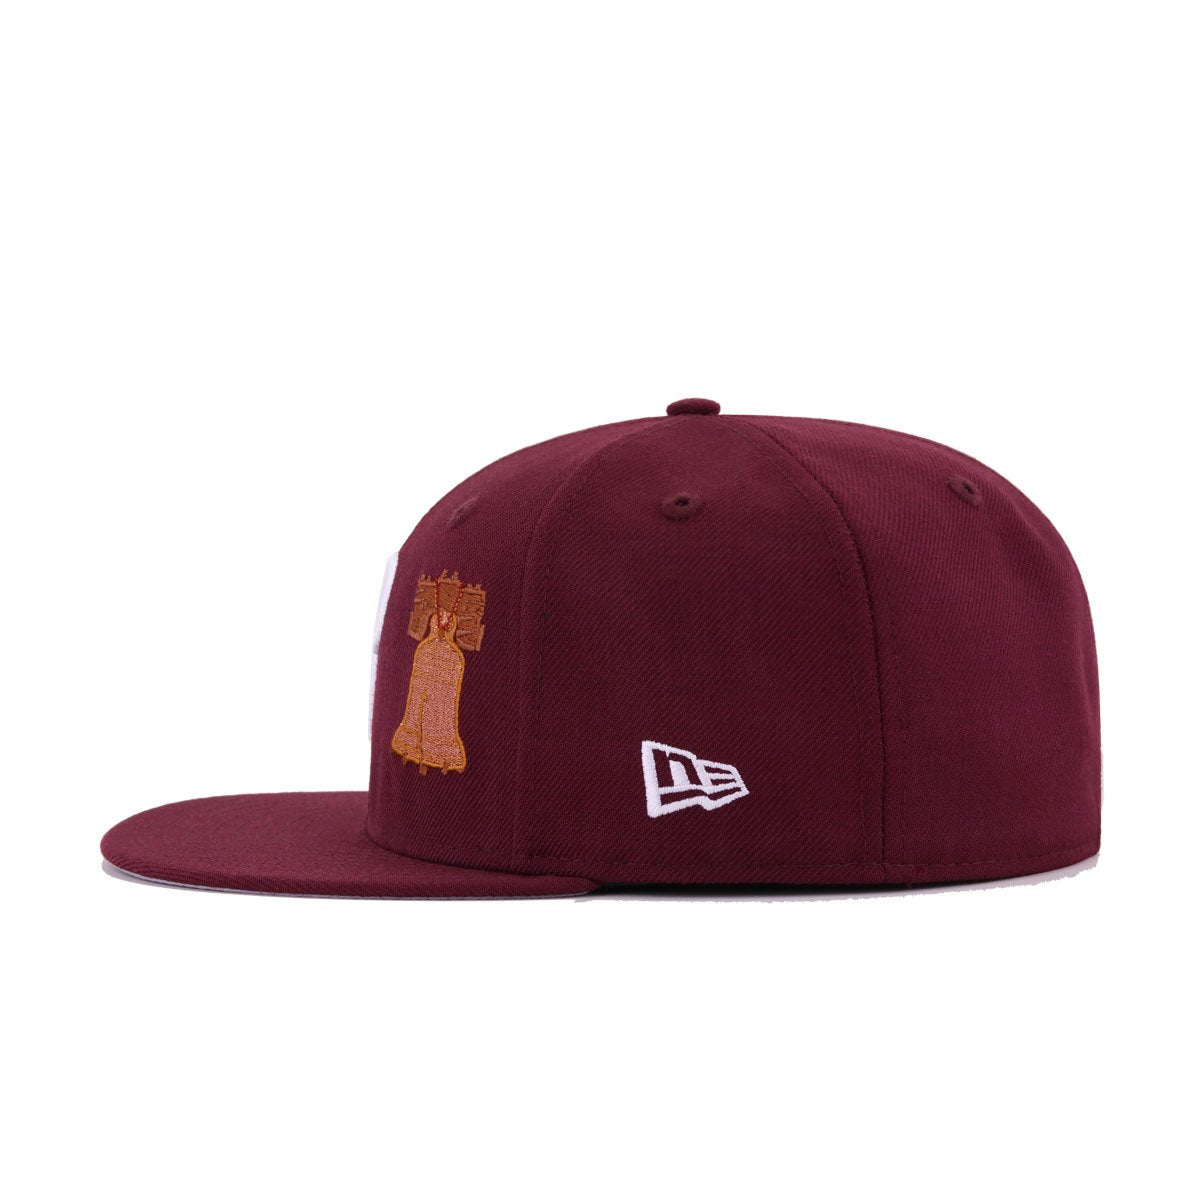 Philadelphia Phillies Maroon Liberty Bell New Era 59Fifty Fitted